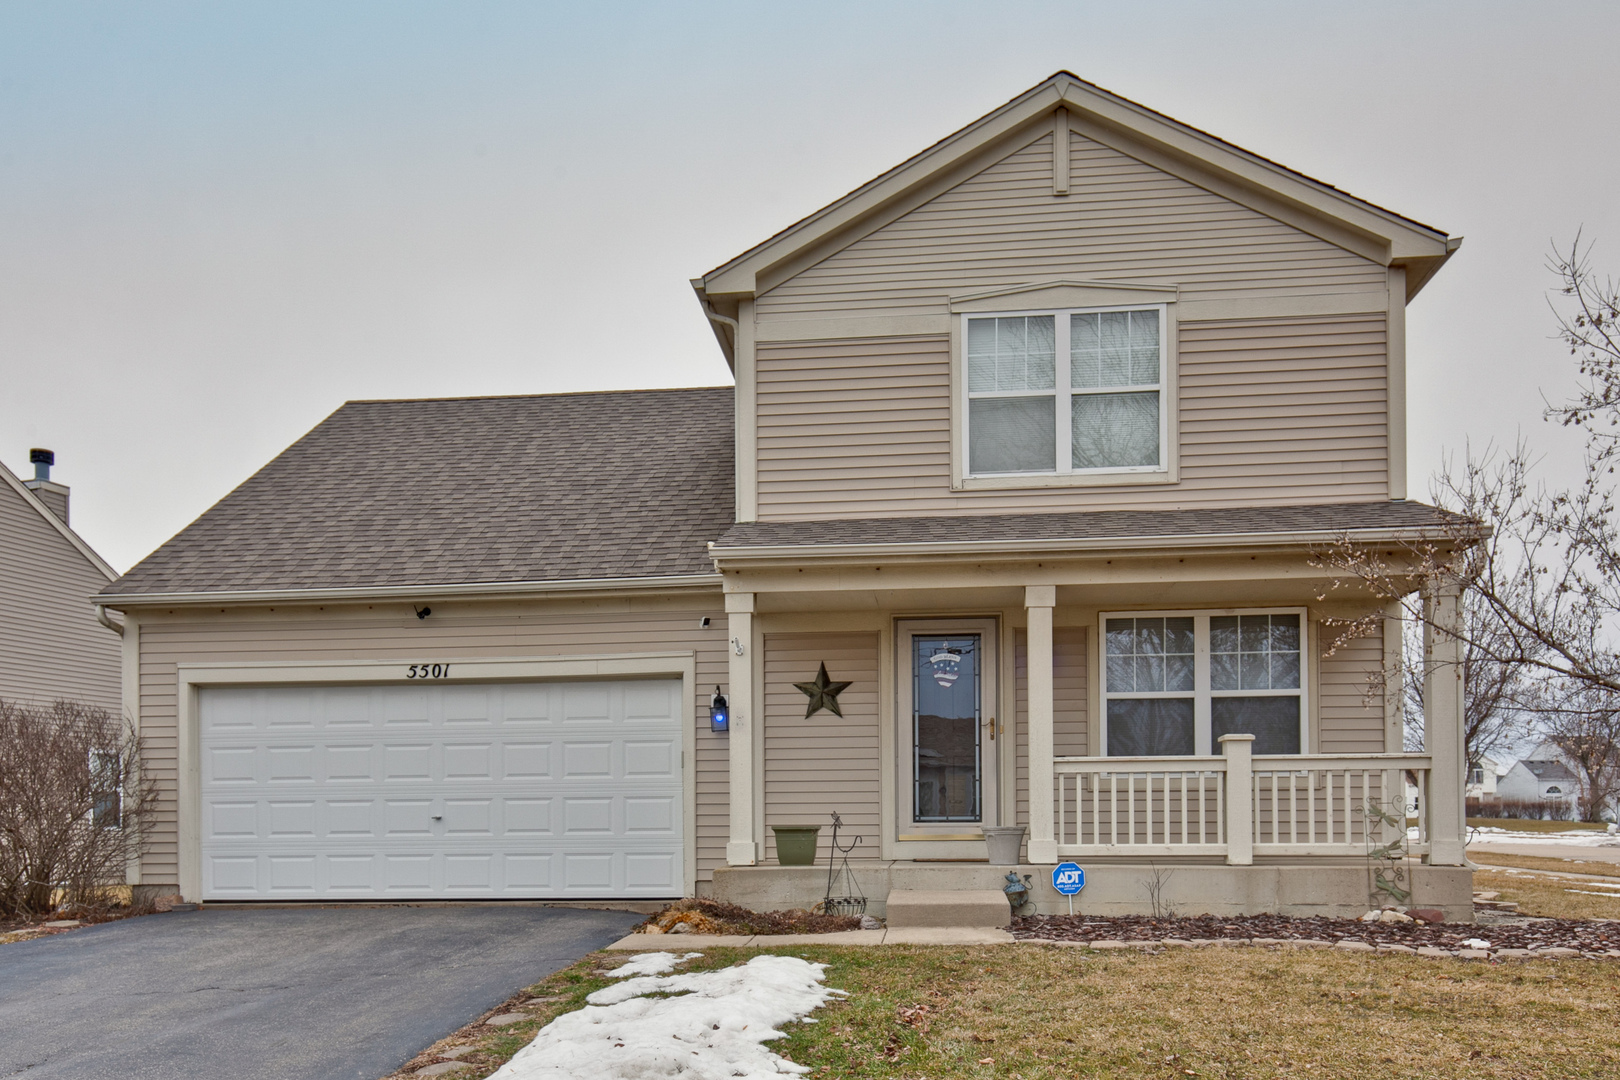 Photo for 5501 Windgate Way, Lake In The Hills, IL 60156 (MLS # 10630842)